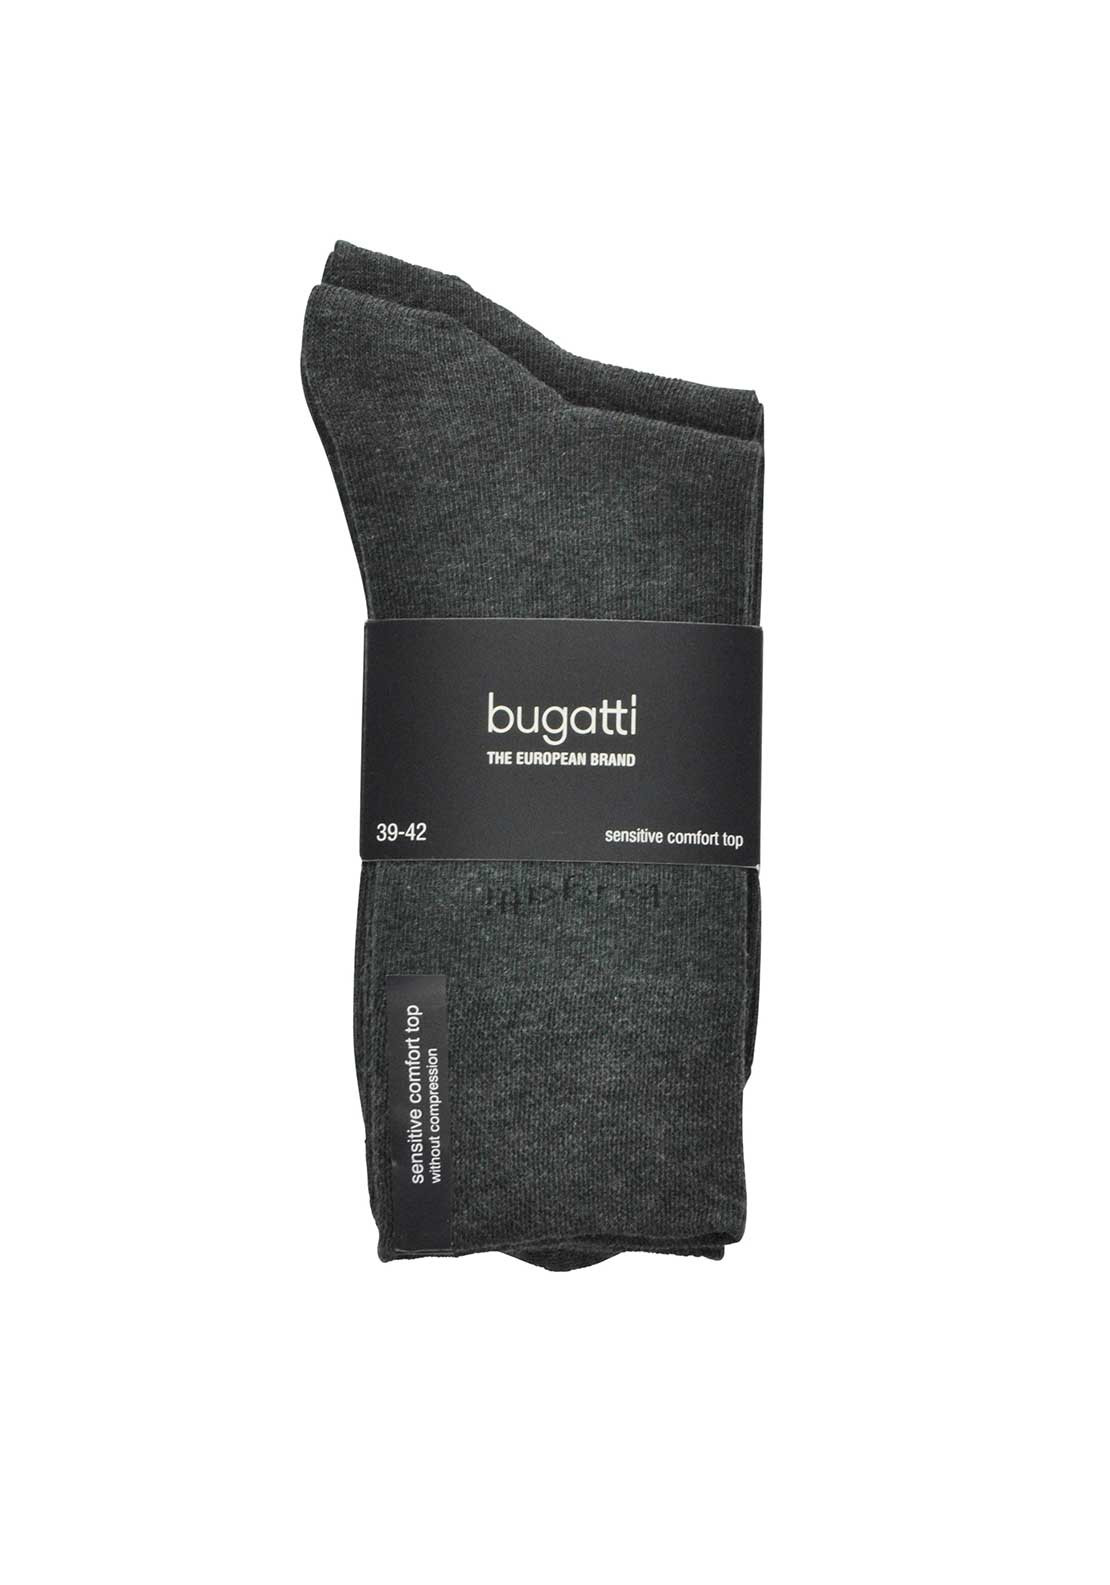 Bugatti Mens 2 Pack Soft Cotton Comfort Top Socks, Anthracite Grey